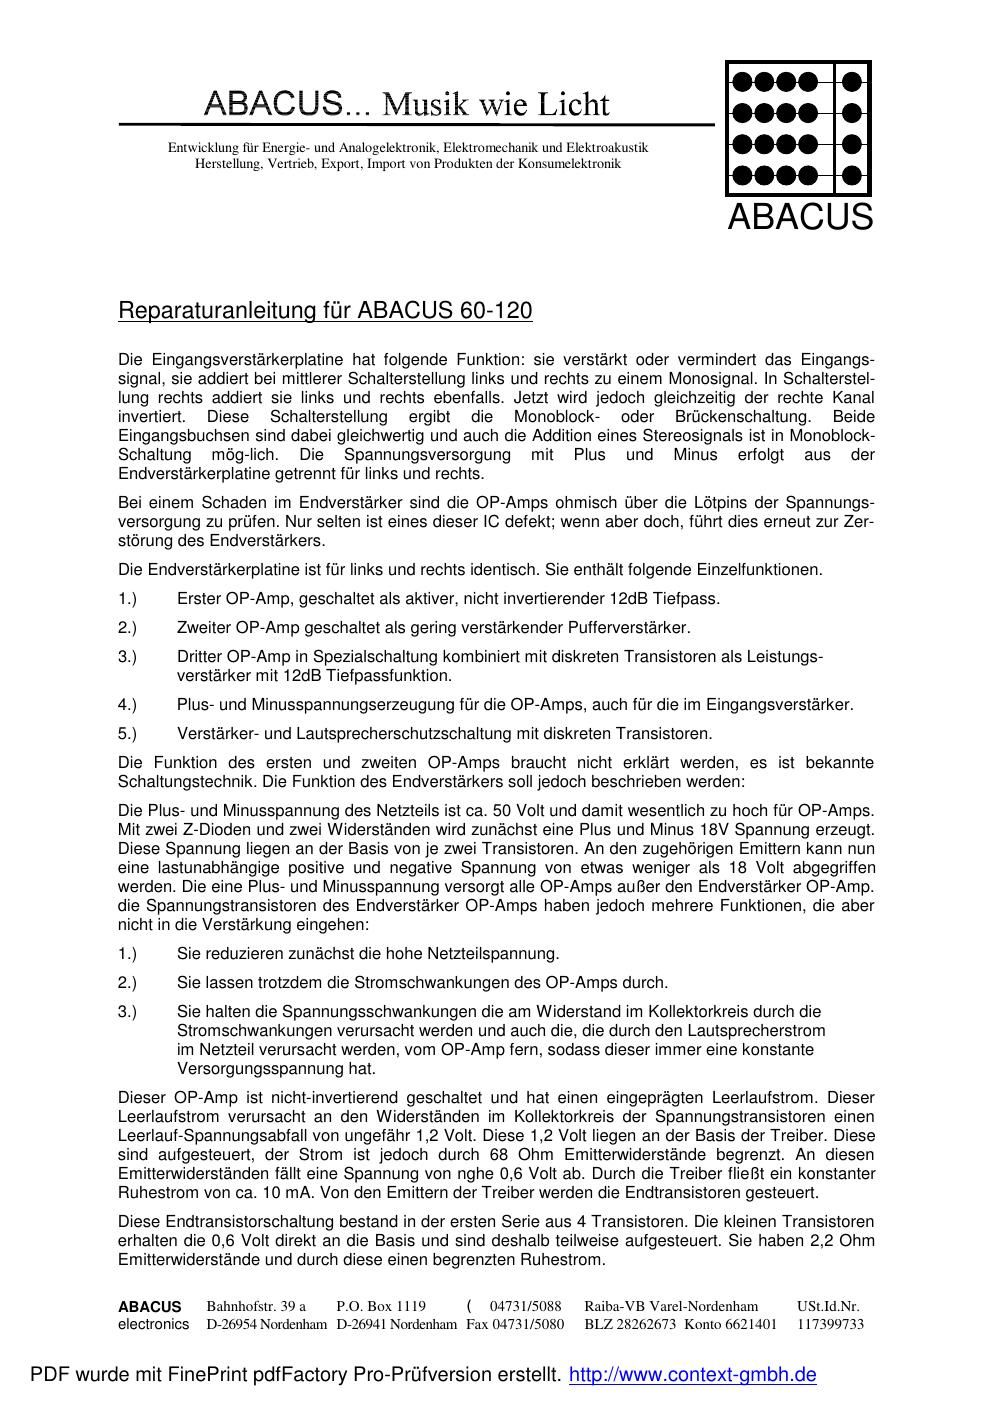 abacus 60 120 service manual